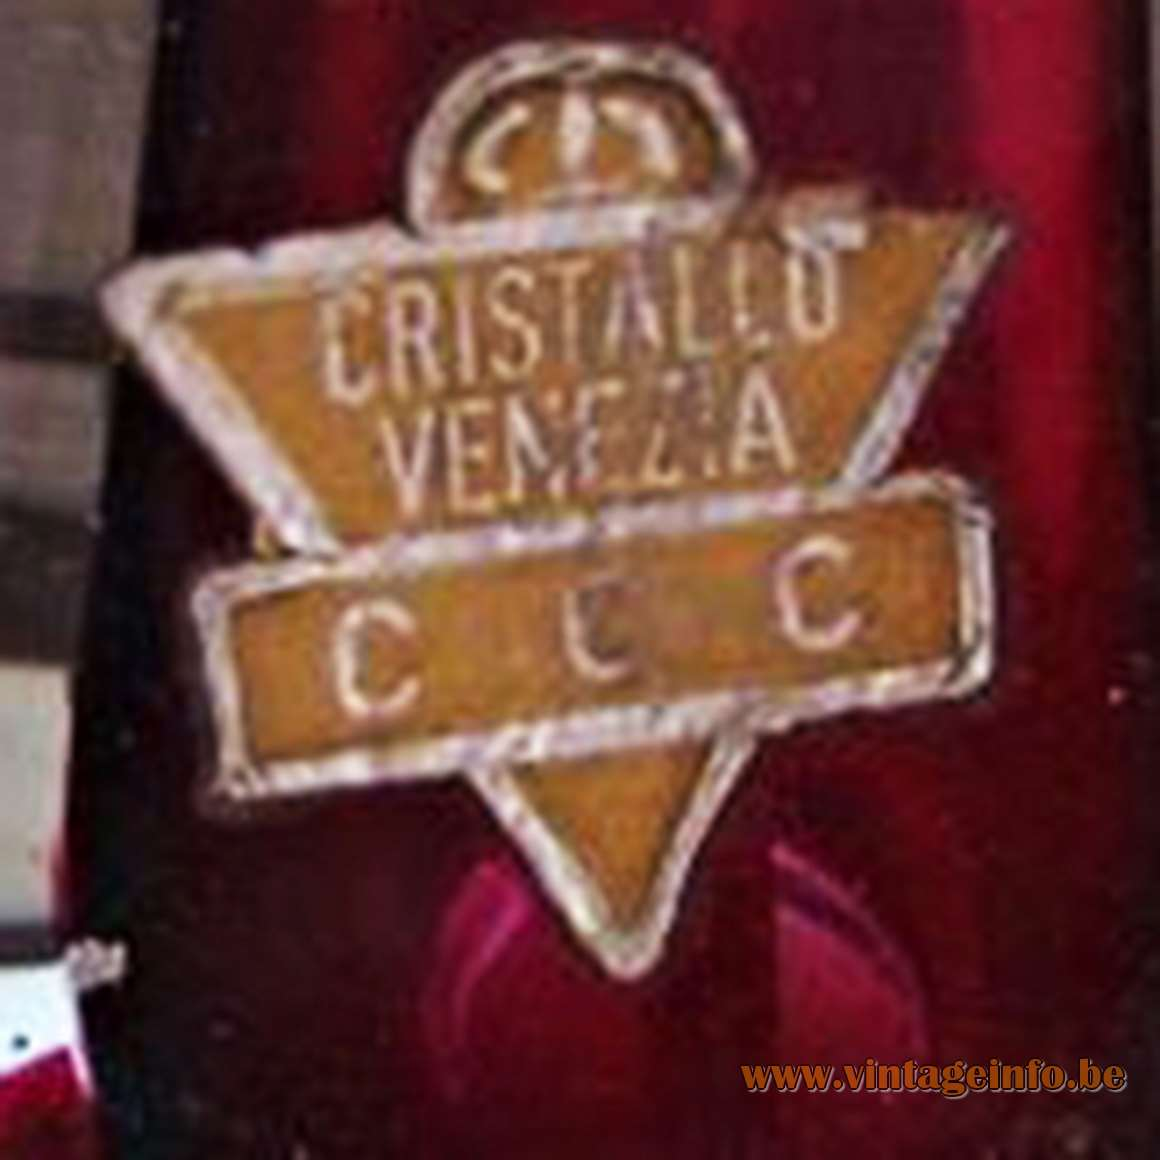 Cristallo Venezia CCC label